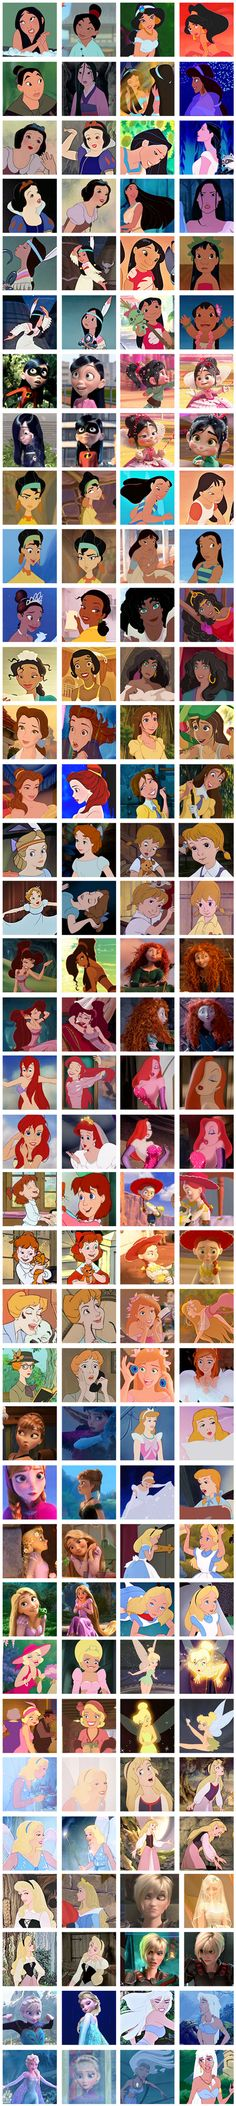 All the Disney ladies, even the ones you forget about. There's only one I don't recognise!! Not bad!!! :-)